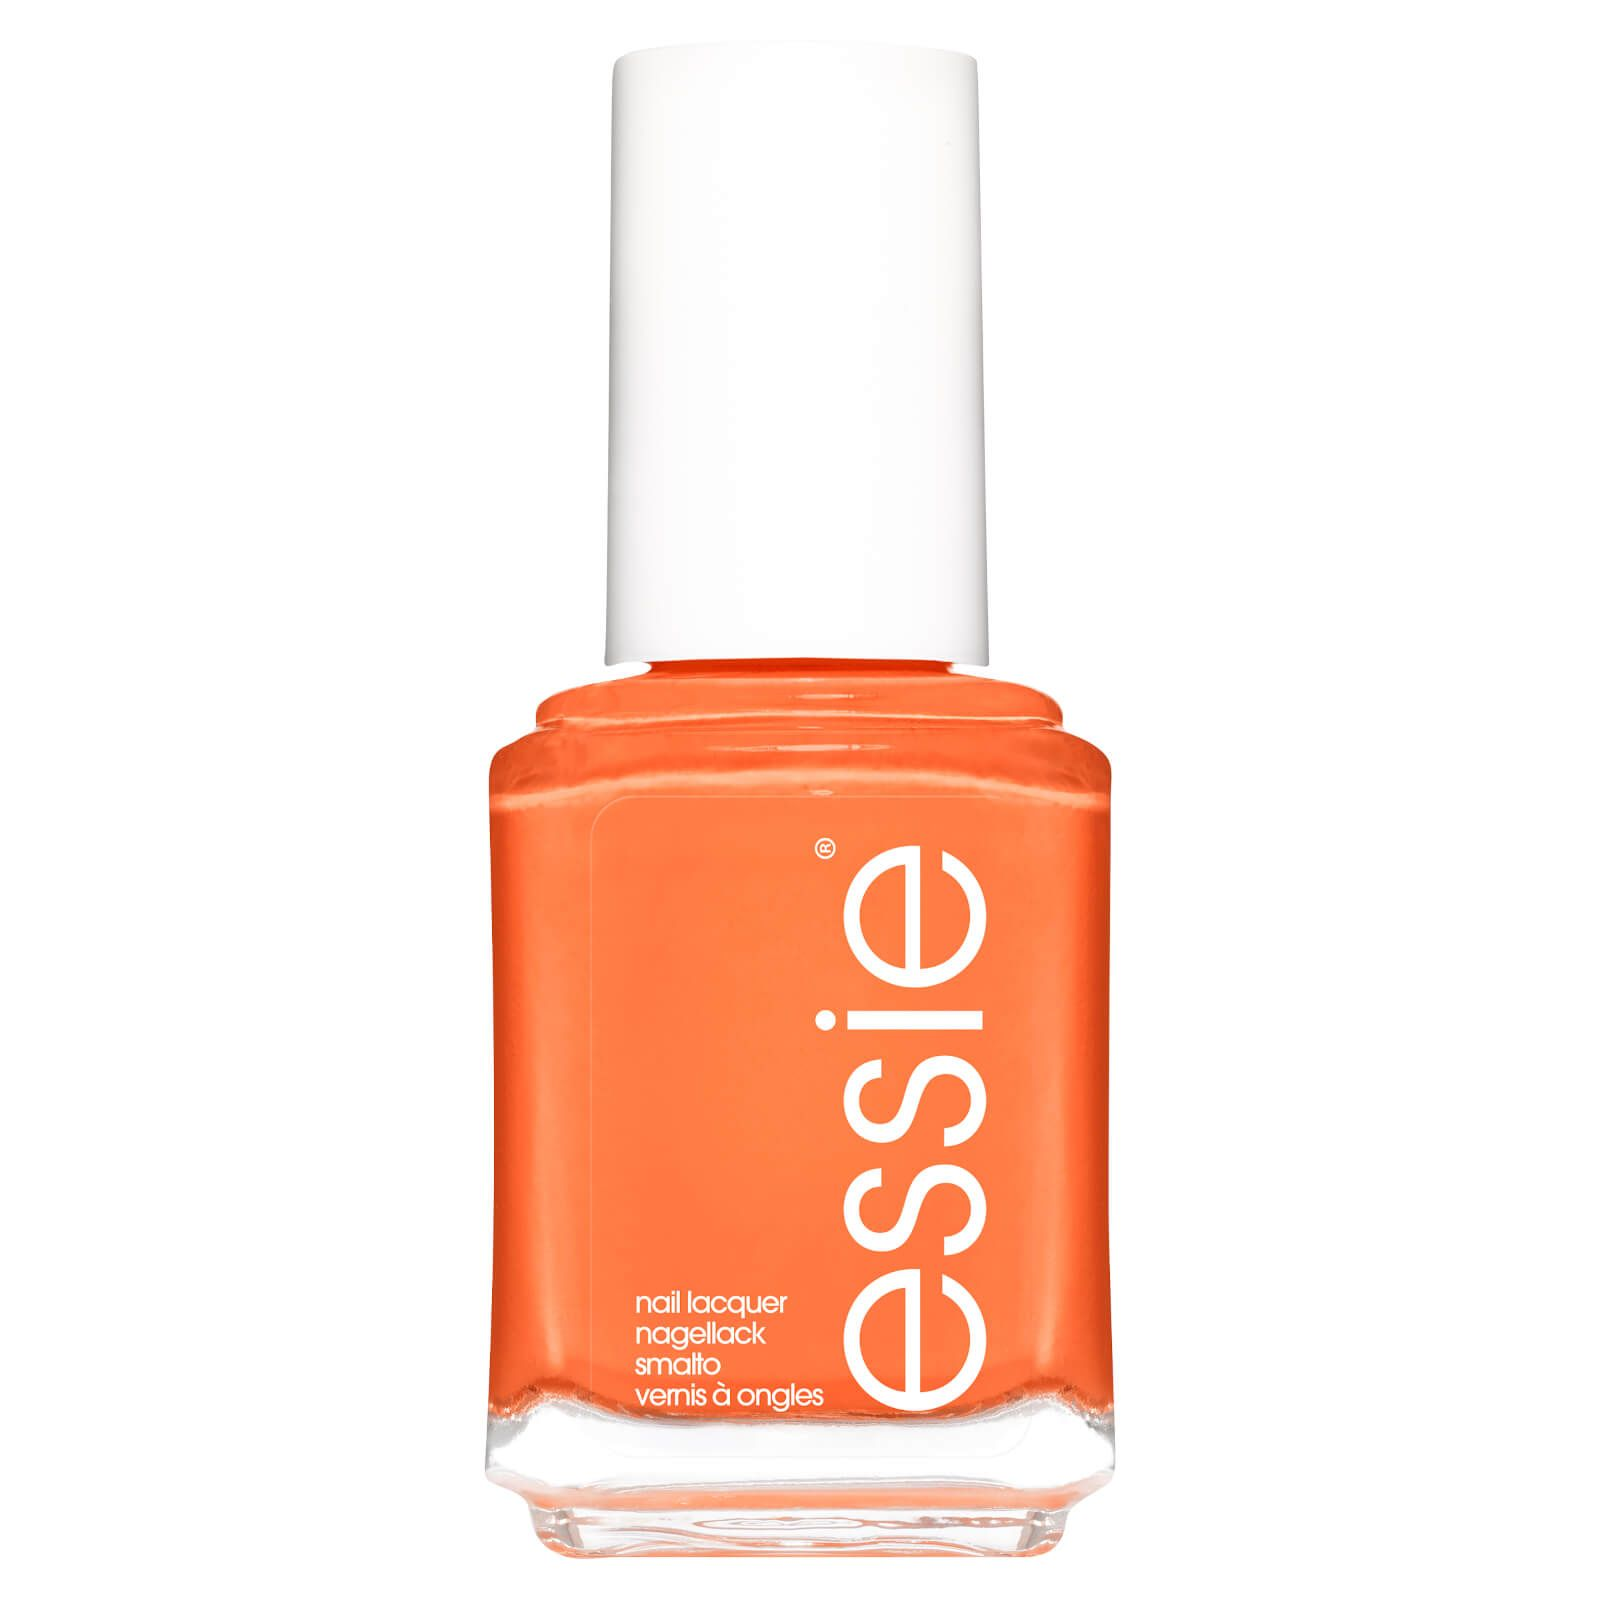 My Celebrity Life – Essie Nail Polish in Souq Up The Sun